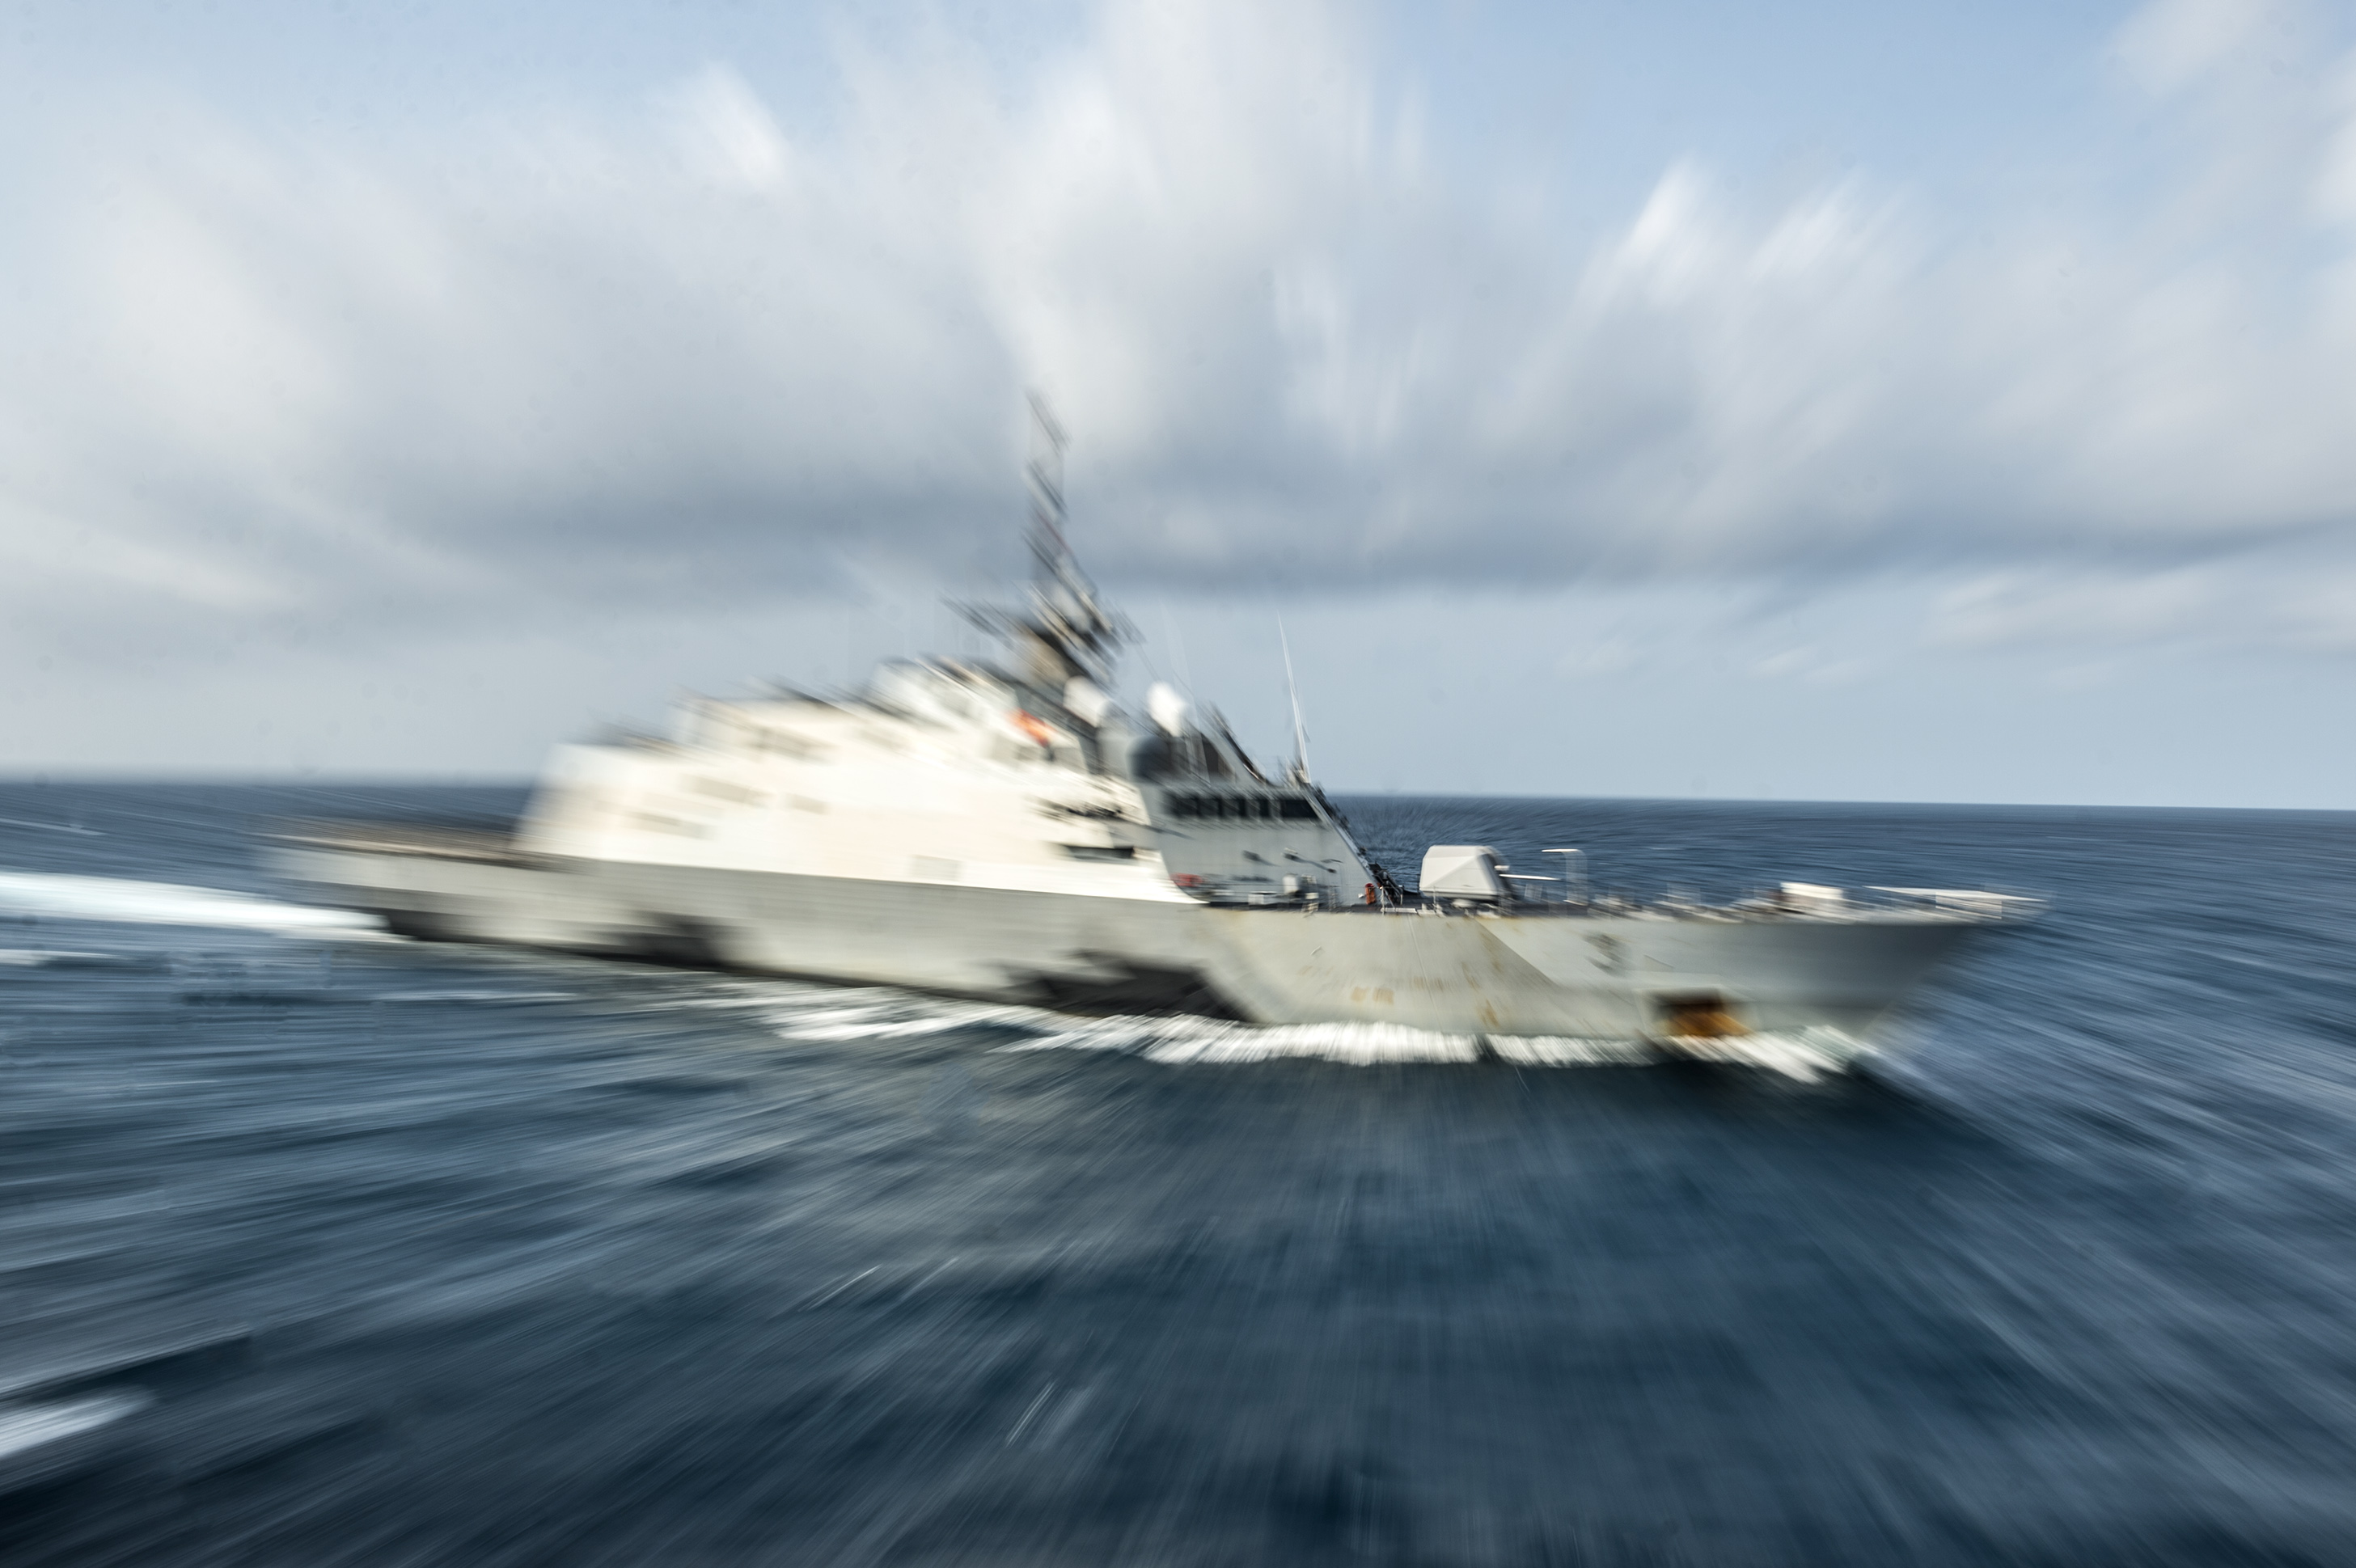 USS Fort Worth (LCS-3) participates in ship maneuvering exercises in the Java Sea on Aug. 9, 2015